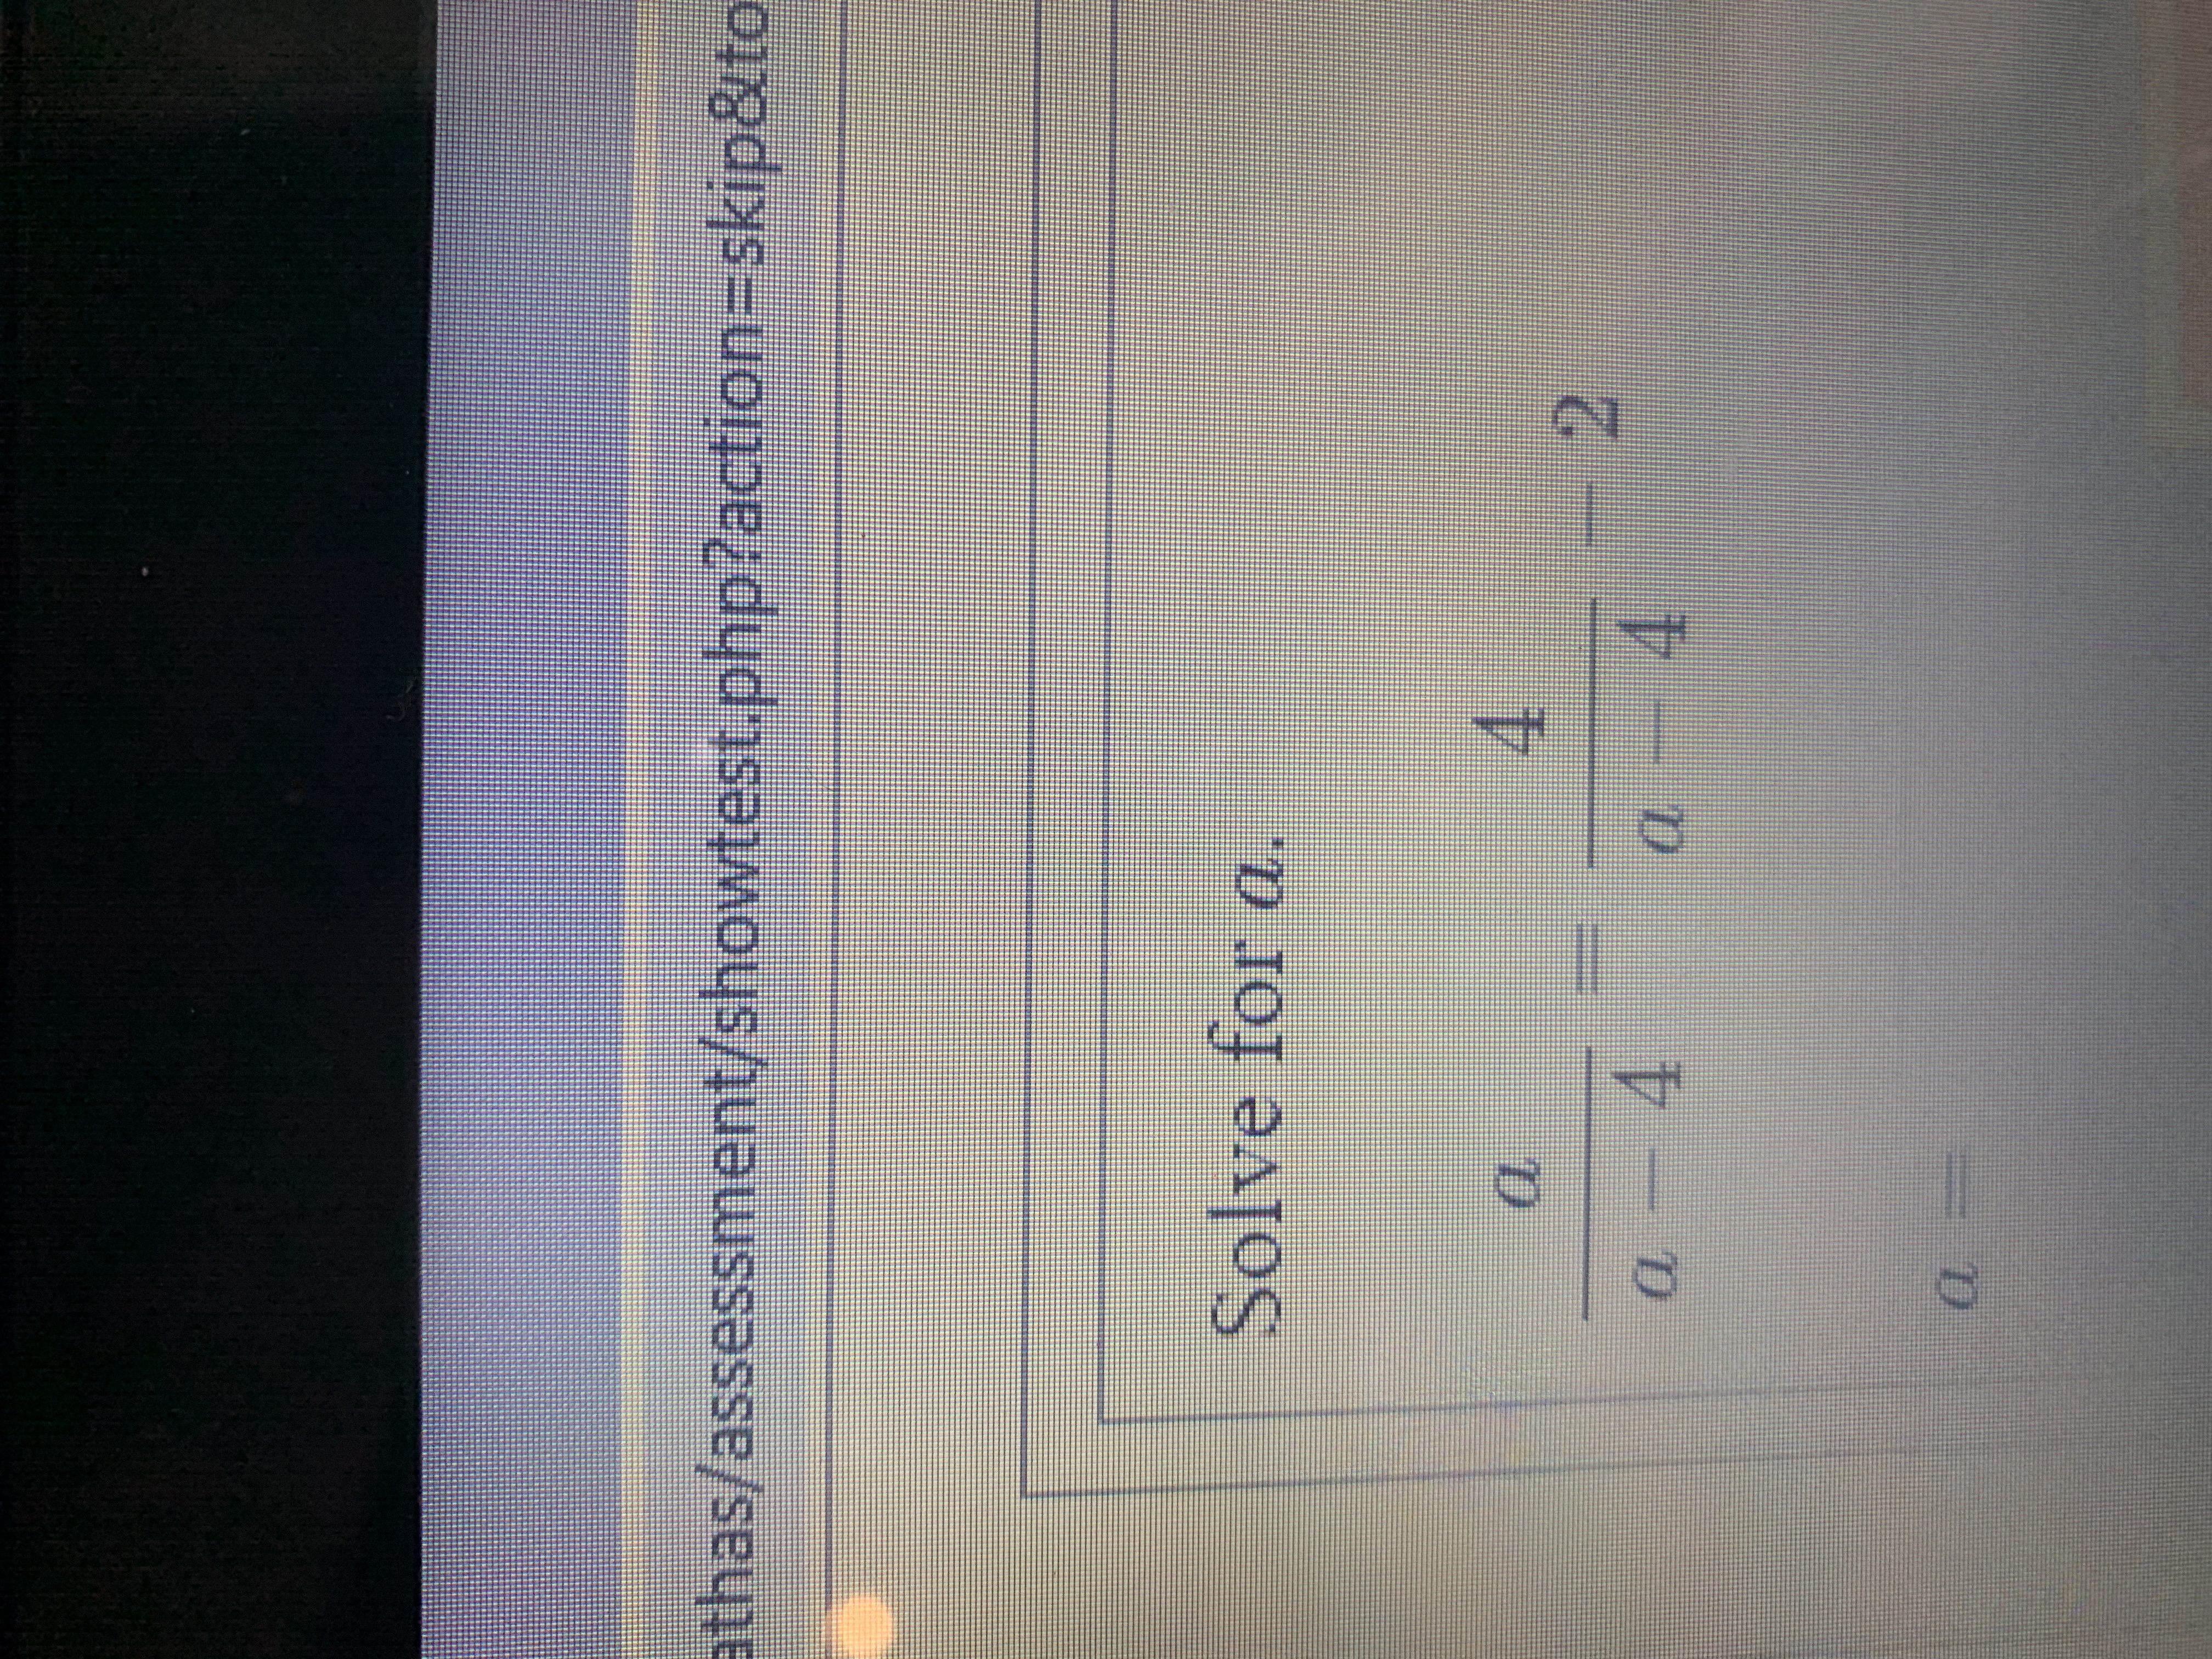 athas/assessment/showtest.php?action-skip8to Solve for a. 4 2 4 4 st